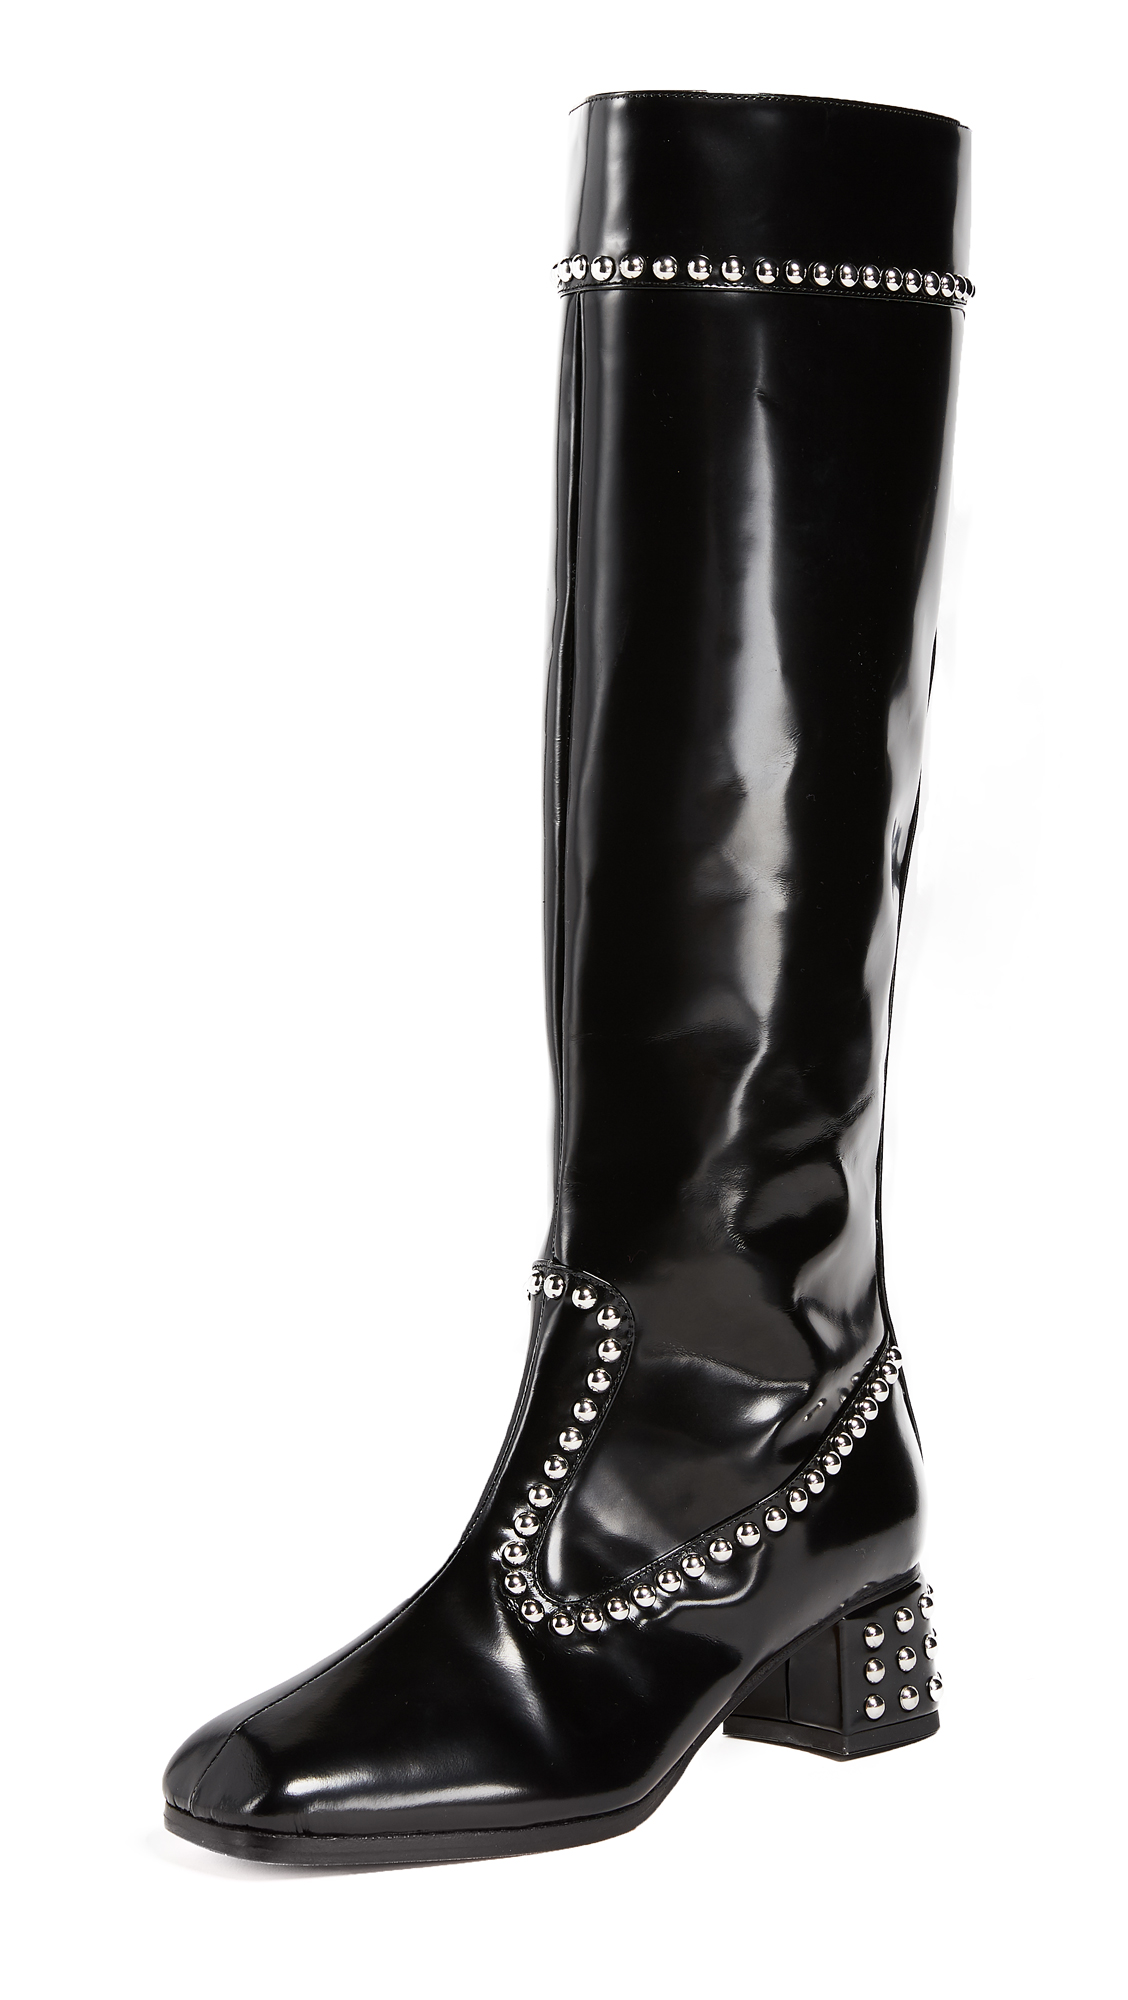 Maryam Nassir Zadeh Kiki Knee High Boots - Black